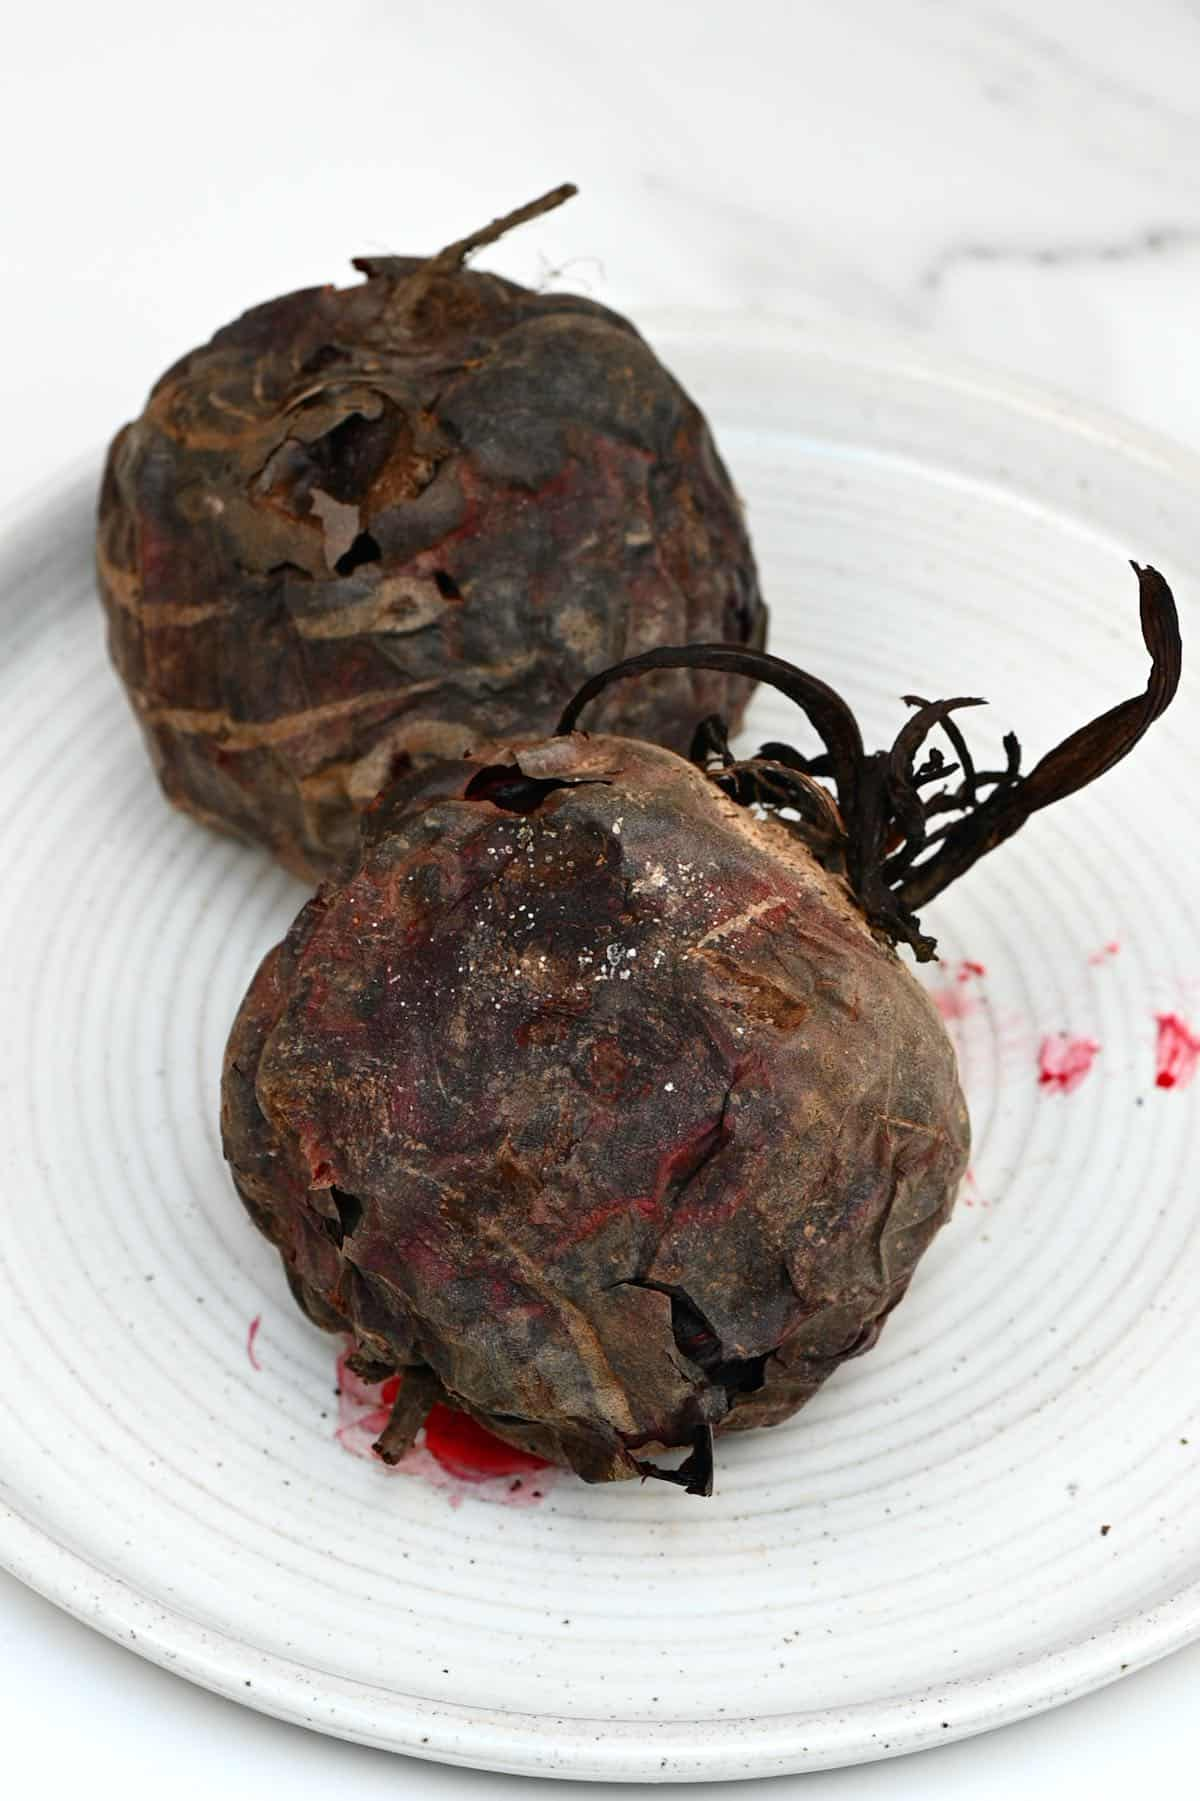 Baked whole beetroot